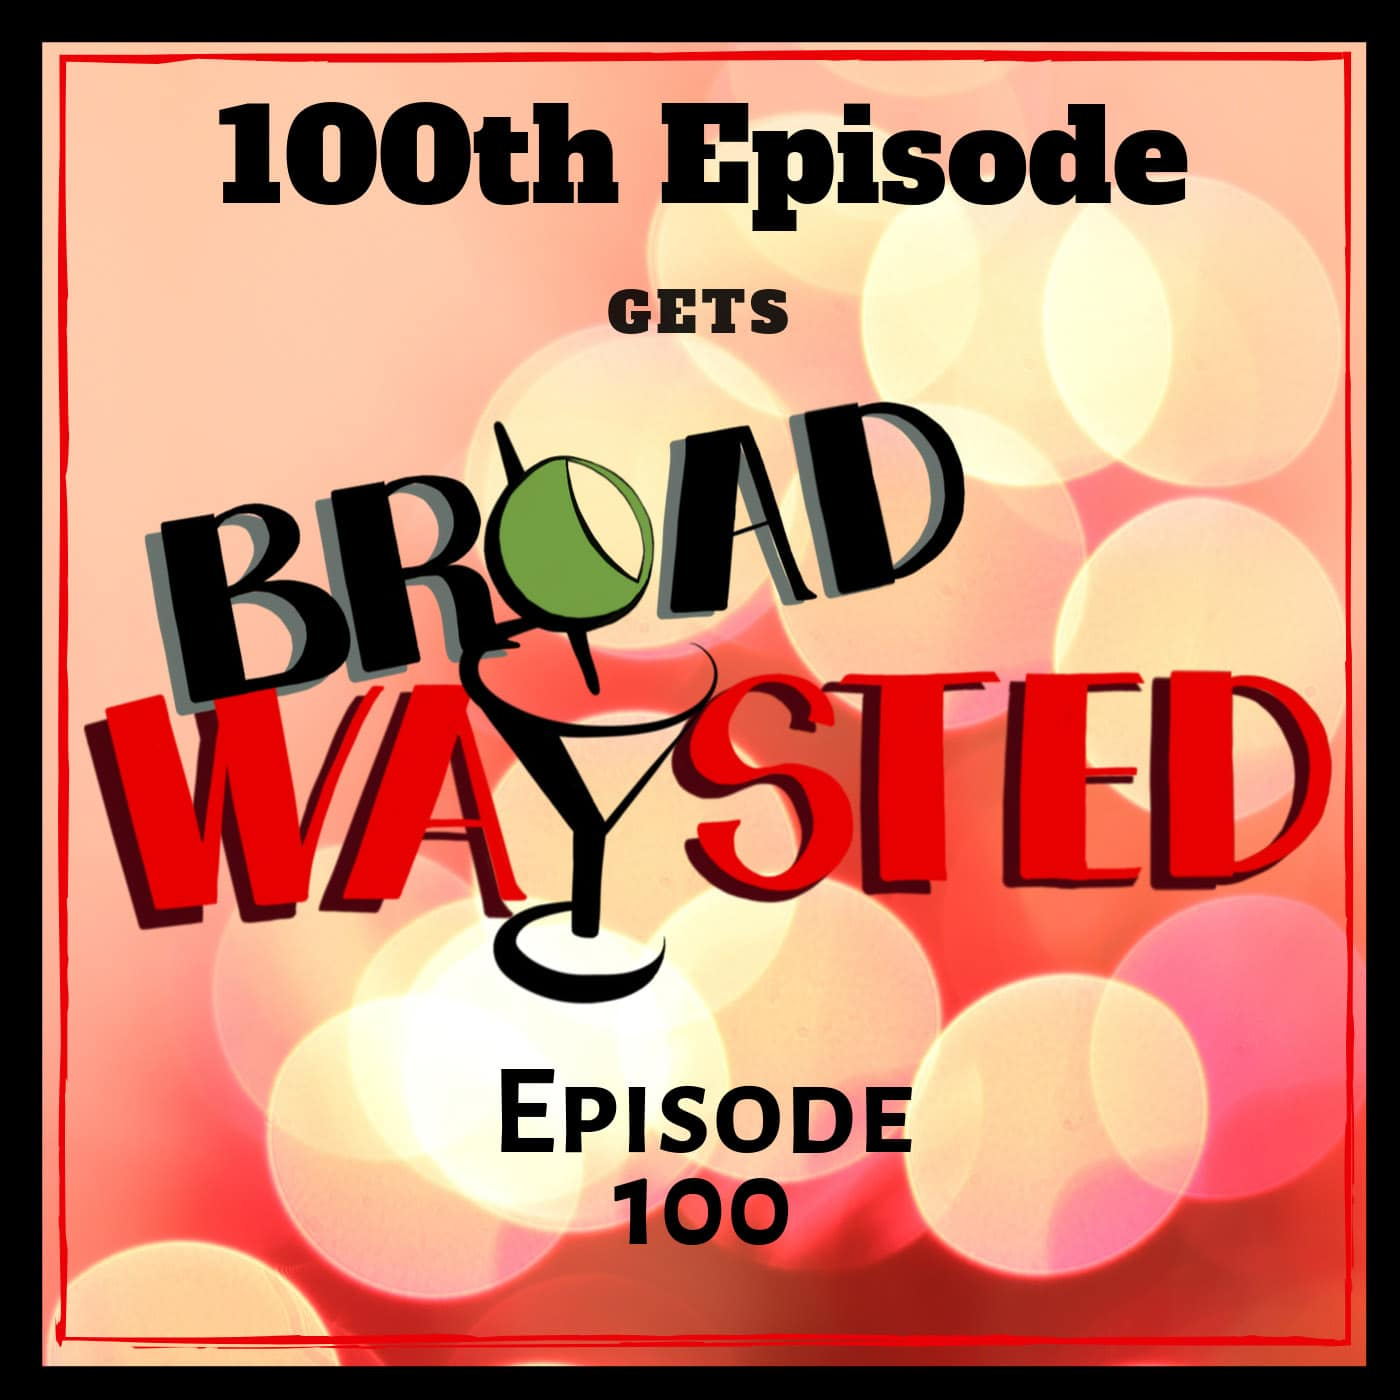 Broadwaysted Ep 100 100th